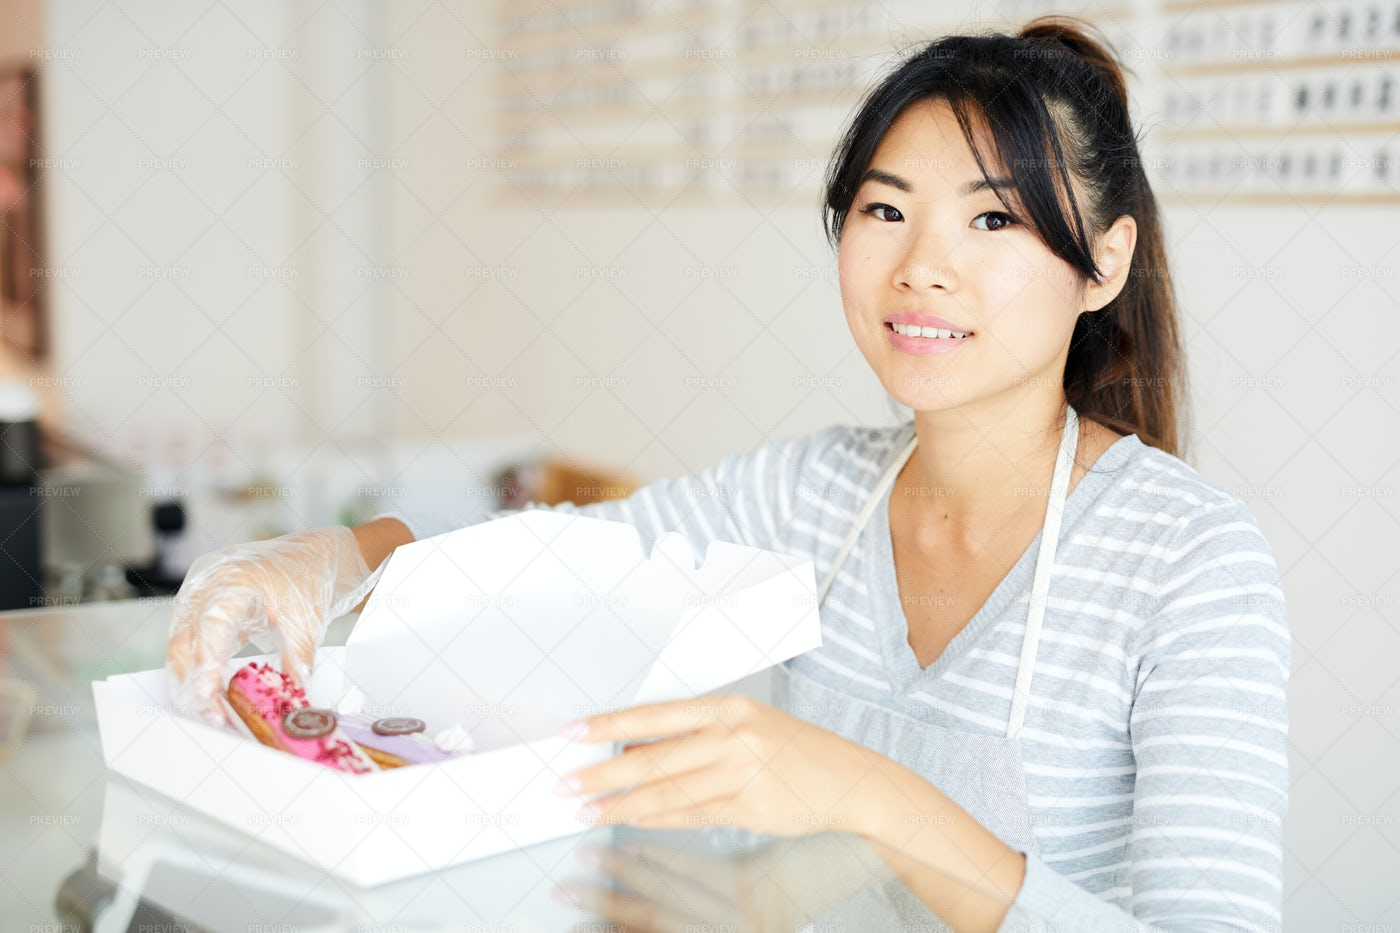 Cakes For Take Out: Stock Photos